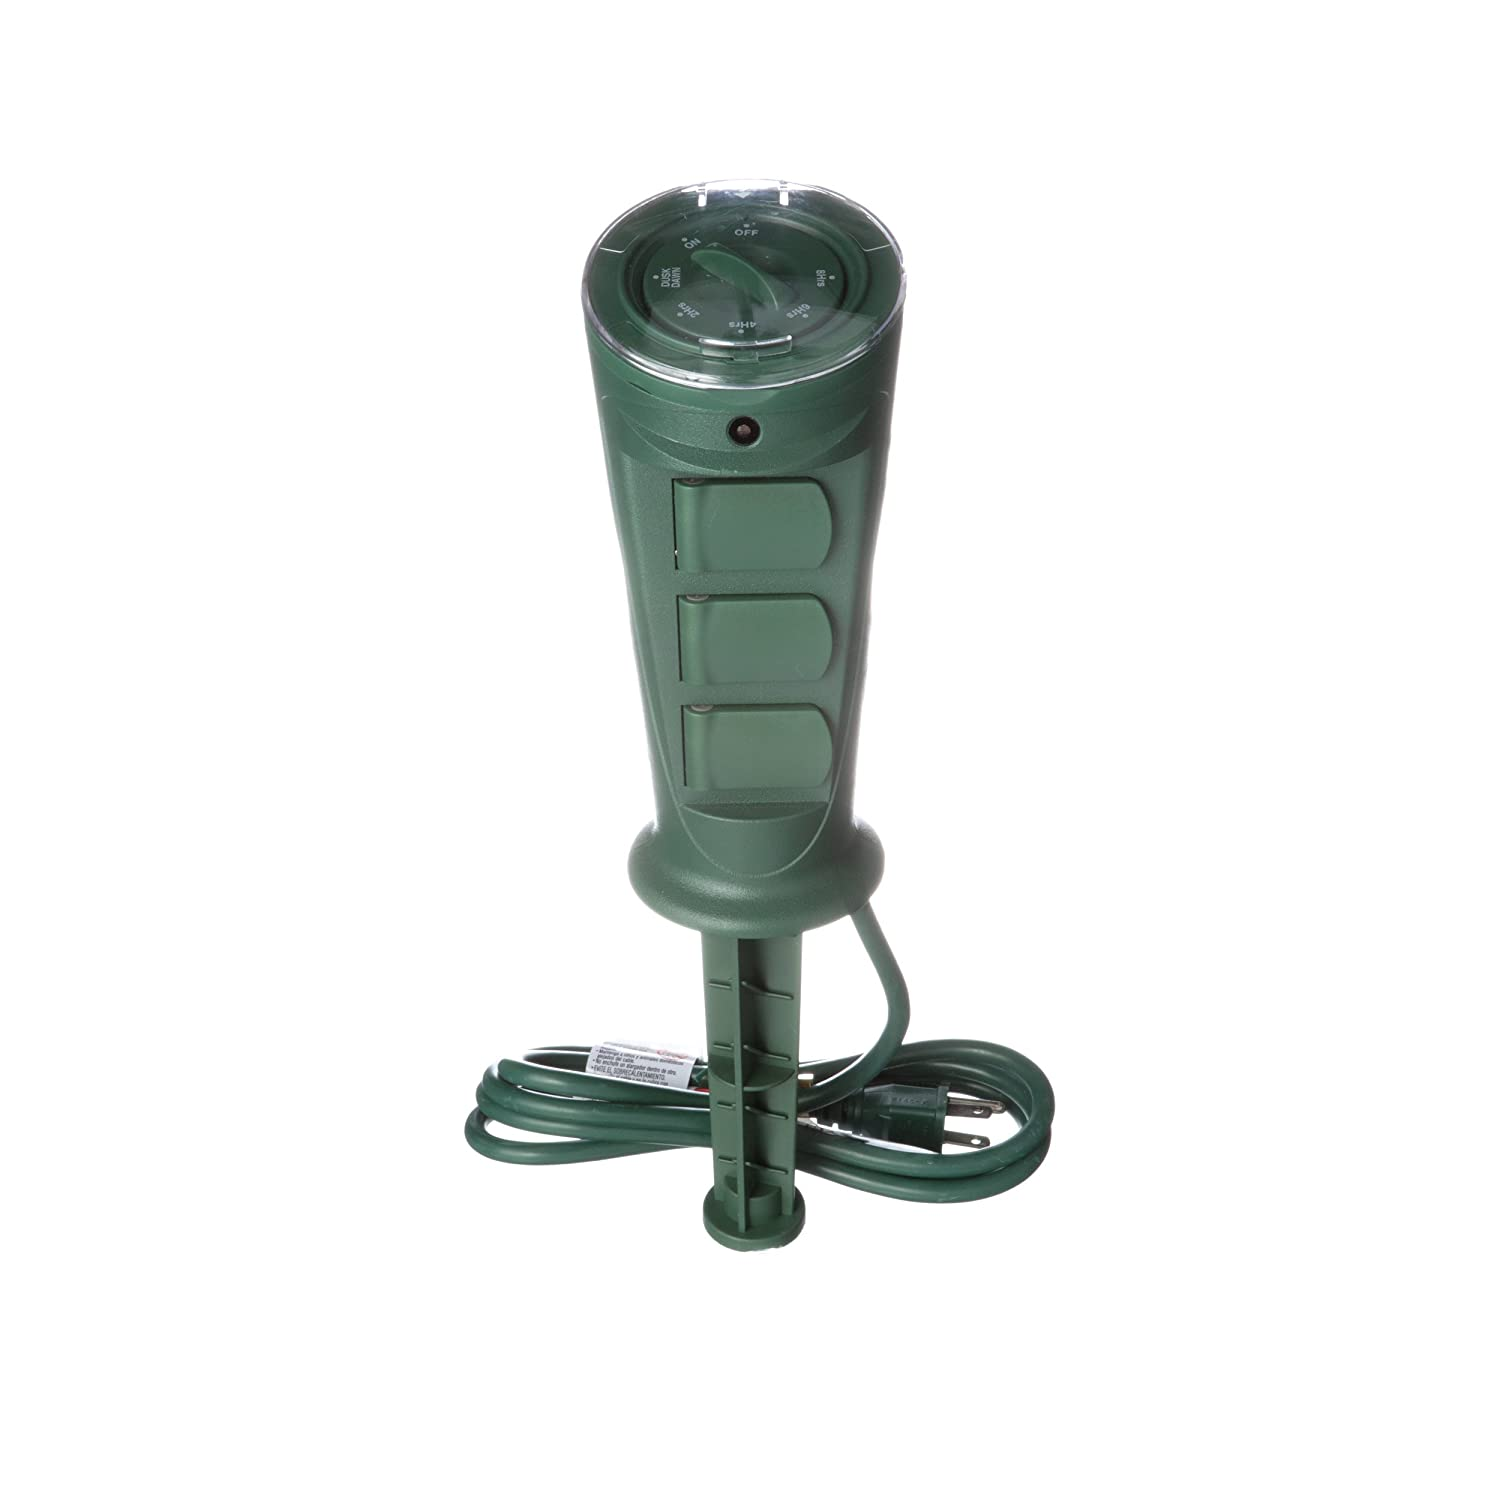 Woods 17321WD Outdoor Plug-In Yard Stake Timer with Photocell, 3 Grounded Outlets